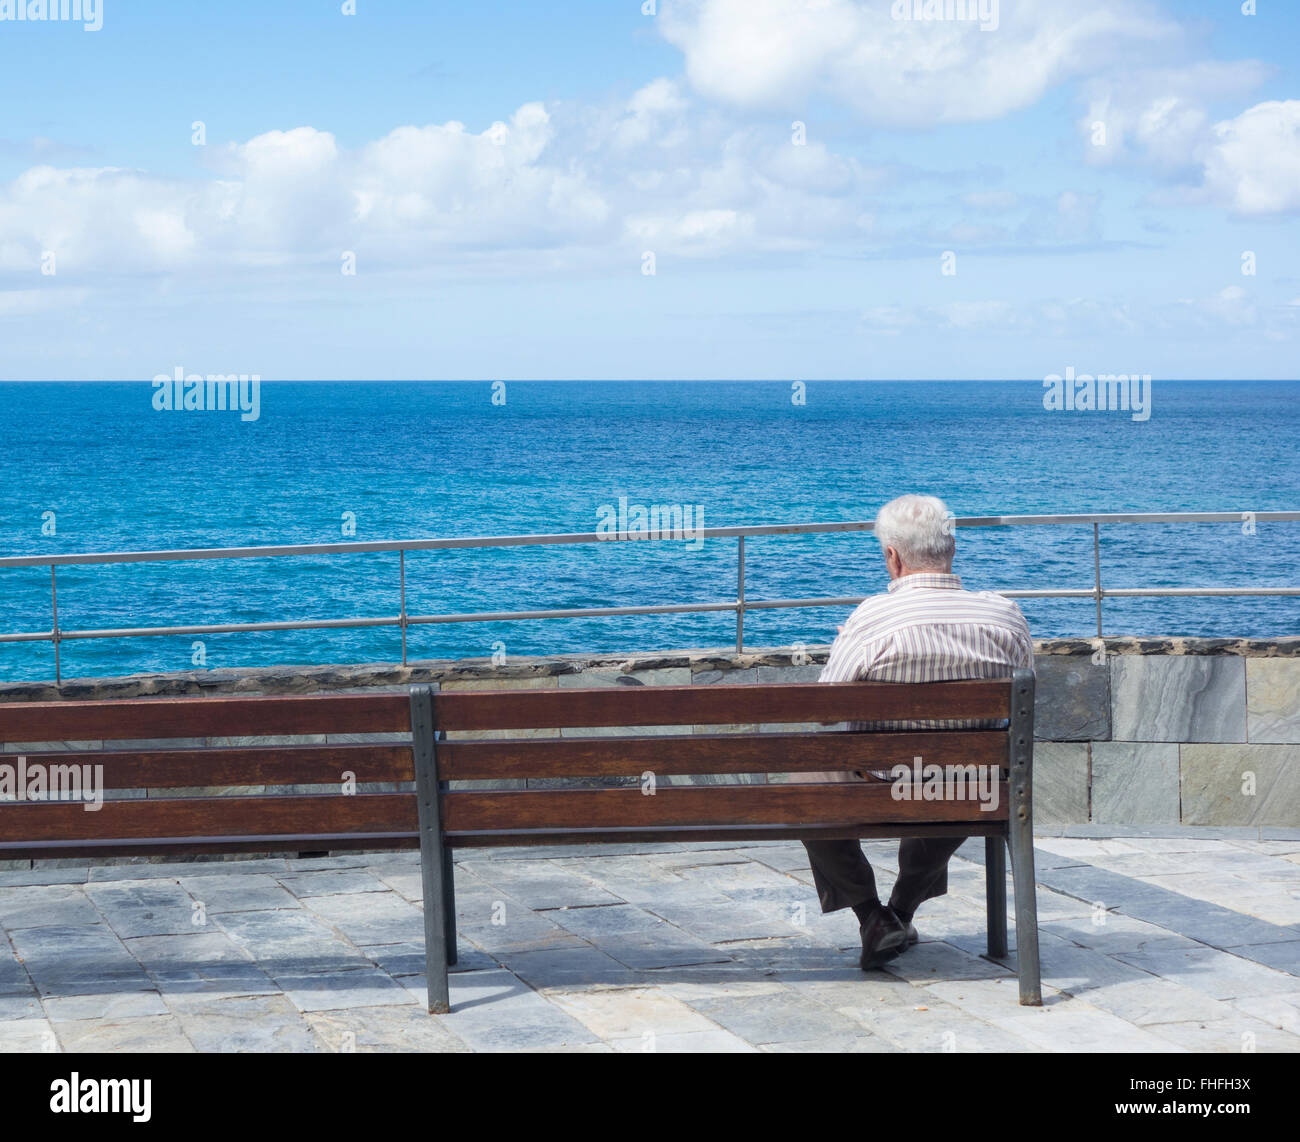 [Image: old-man-sitting-on-bench-looking-out-to-...FHFH3X.jpg]